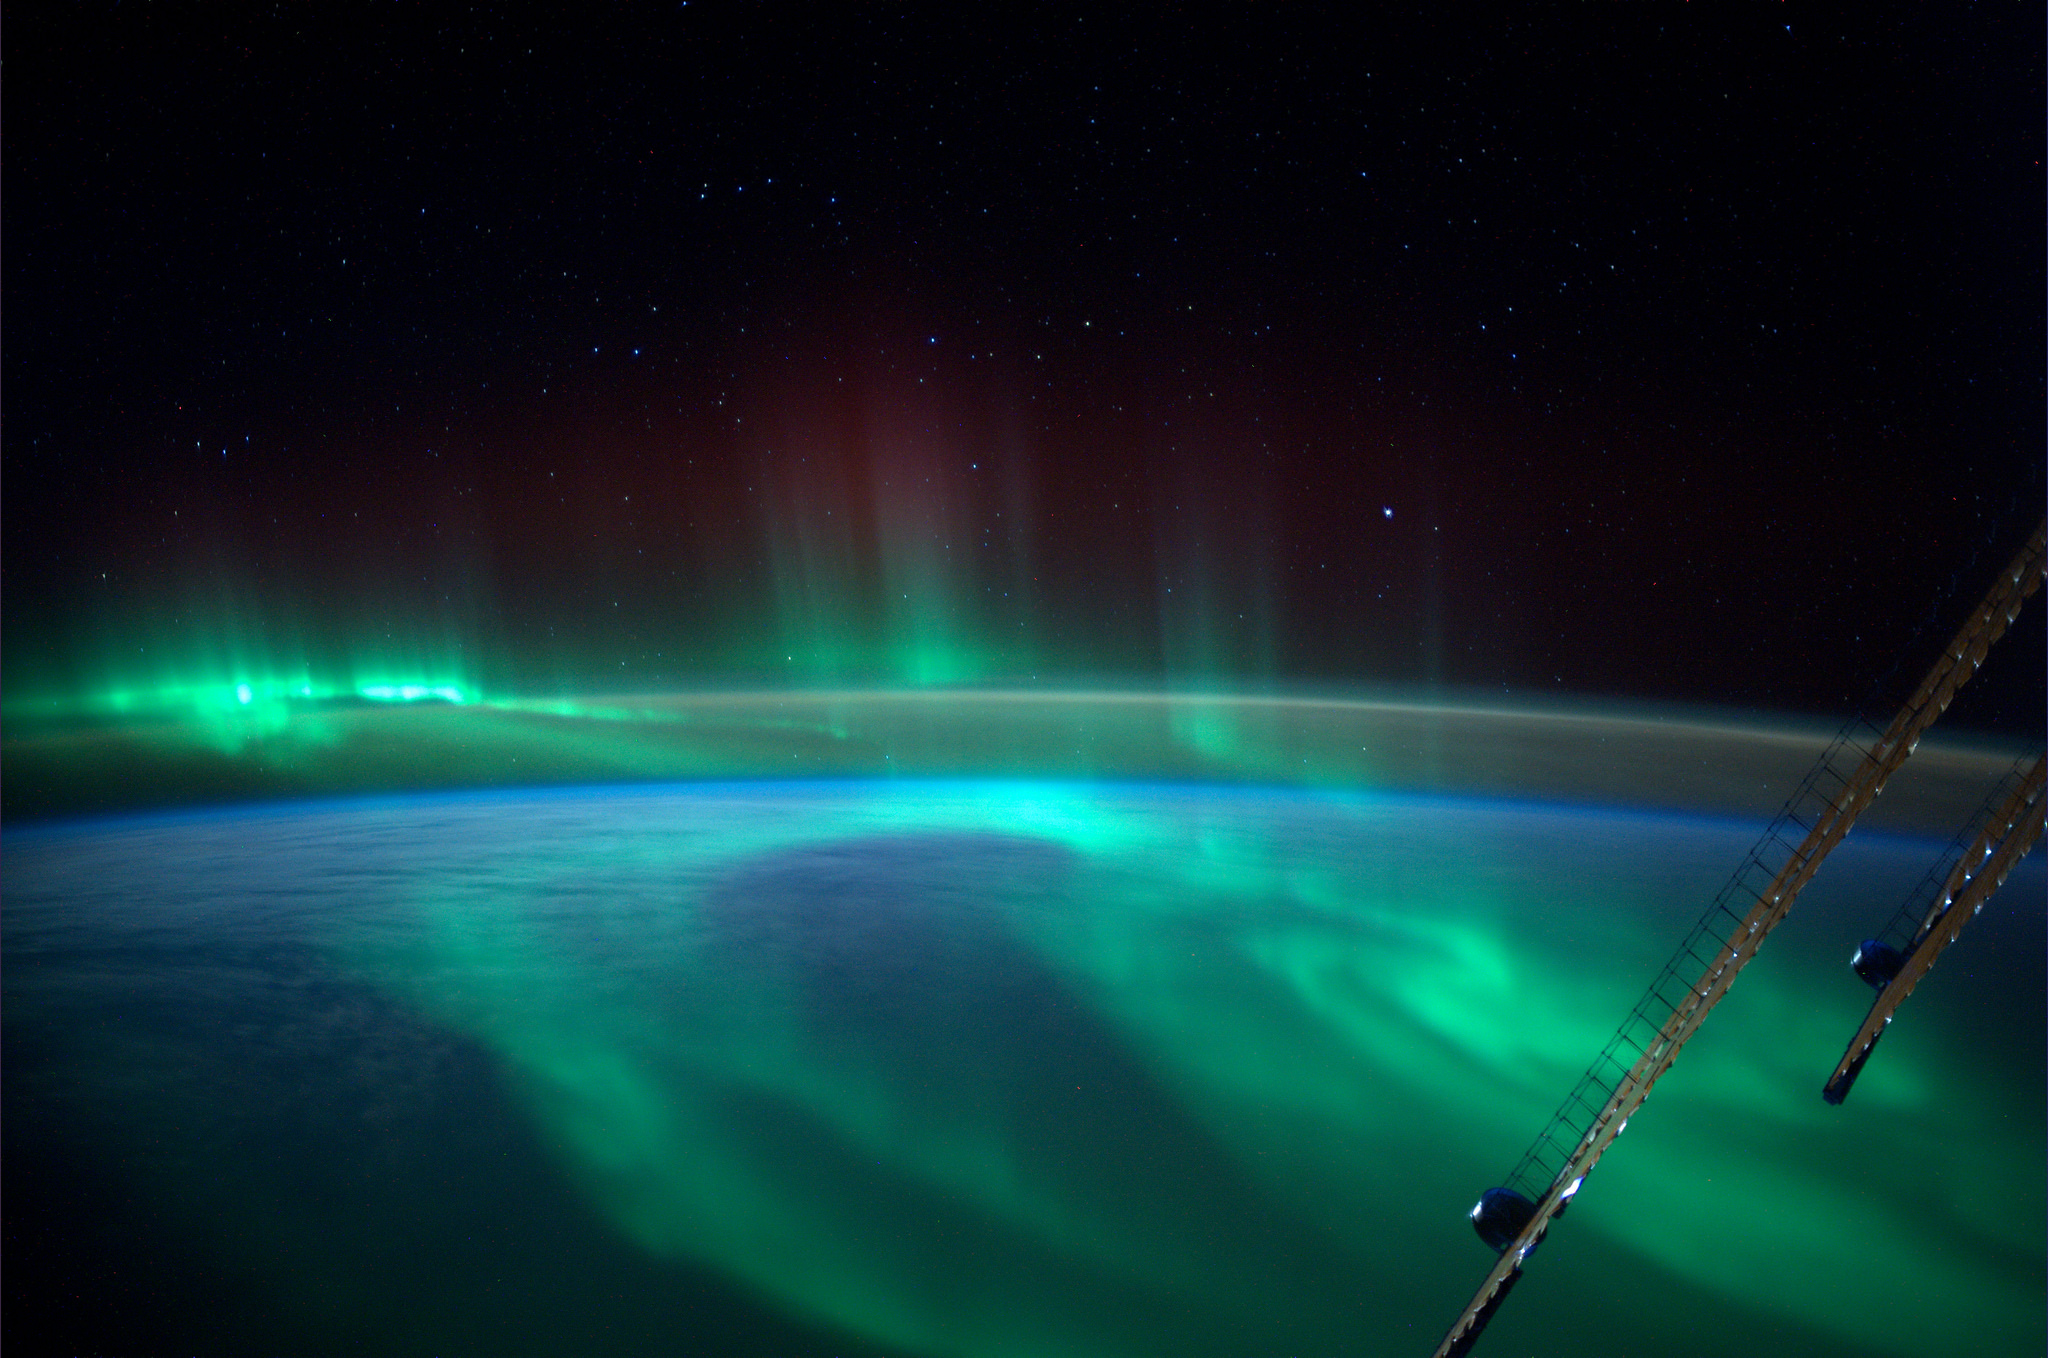 ESA astronaut Alexander Gerst took this image of an aurora as he circled Earth on the International Space Station. Aurora occur when electrons from the Sun hit Earth's atmosphere. Auroras occur frequently over both the North and South polar regions, but are often difficult to see from populated areas. Alexander is a member of the International Space Station Expedition 40/41 crew. He spent five and a half months living and working on the Station for his Blue Dot mission. Image Credit: ESA/NASA